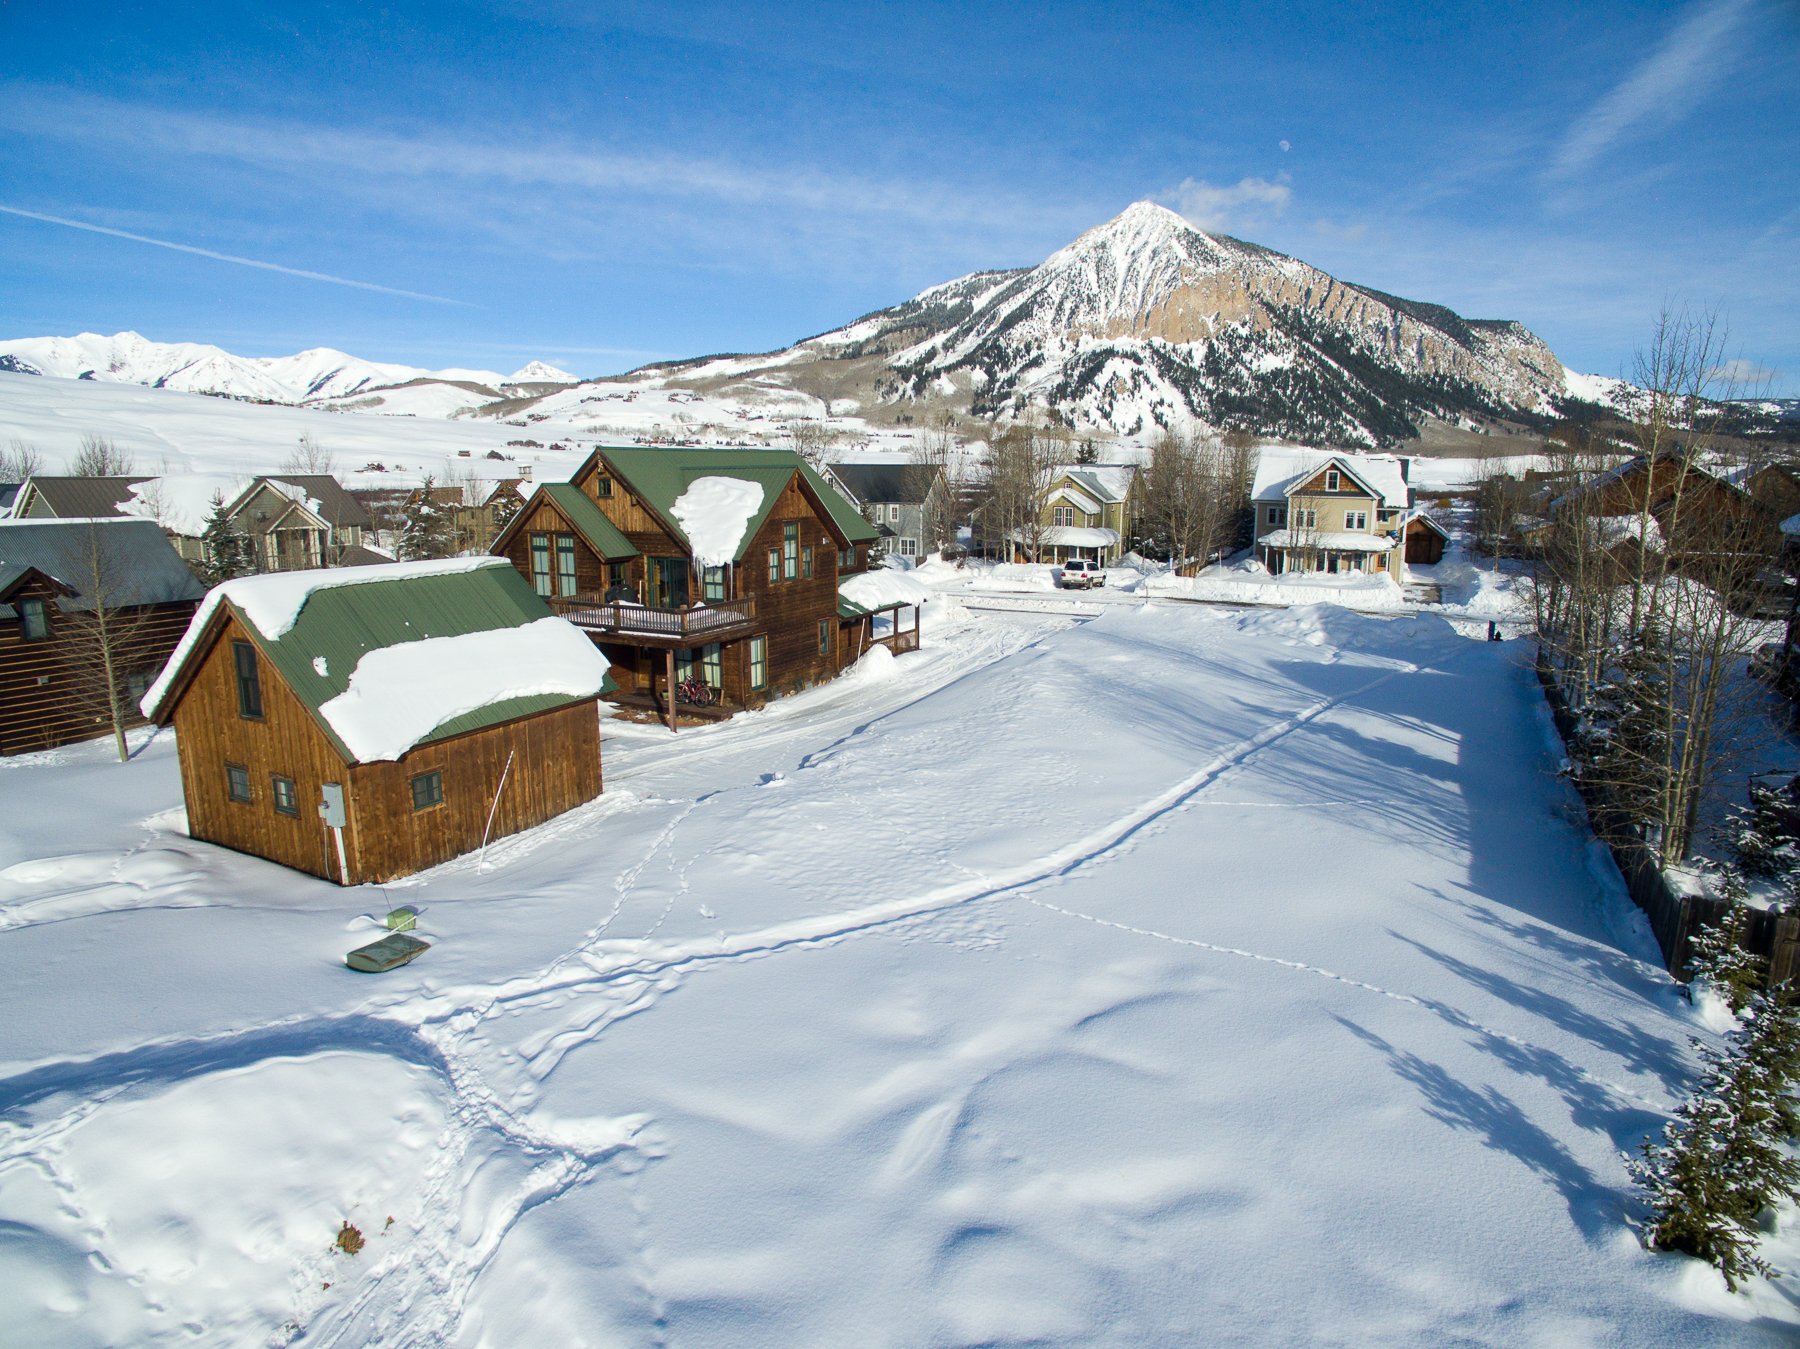 Land for Sale at Coveted Location on Edge of Town 11 Ruths Road Crested Butte, Colorado, 81224 United States